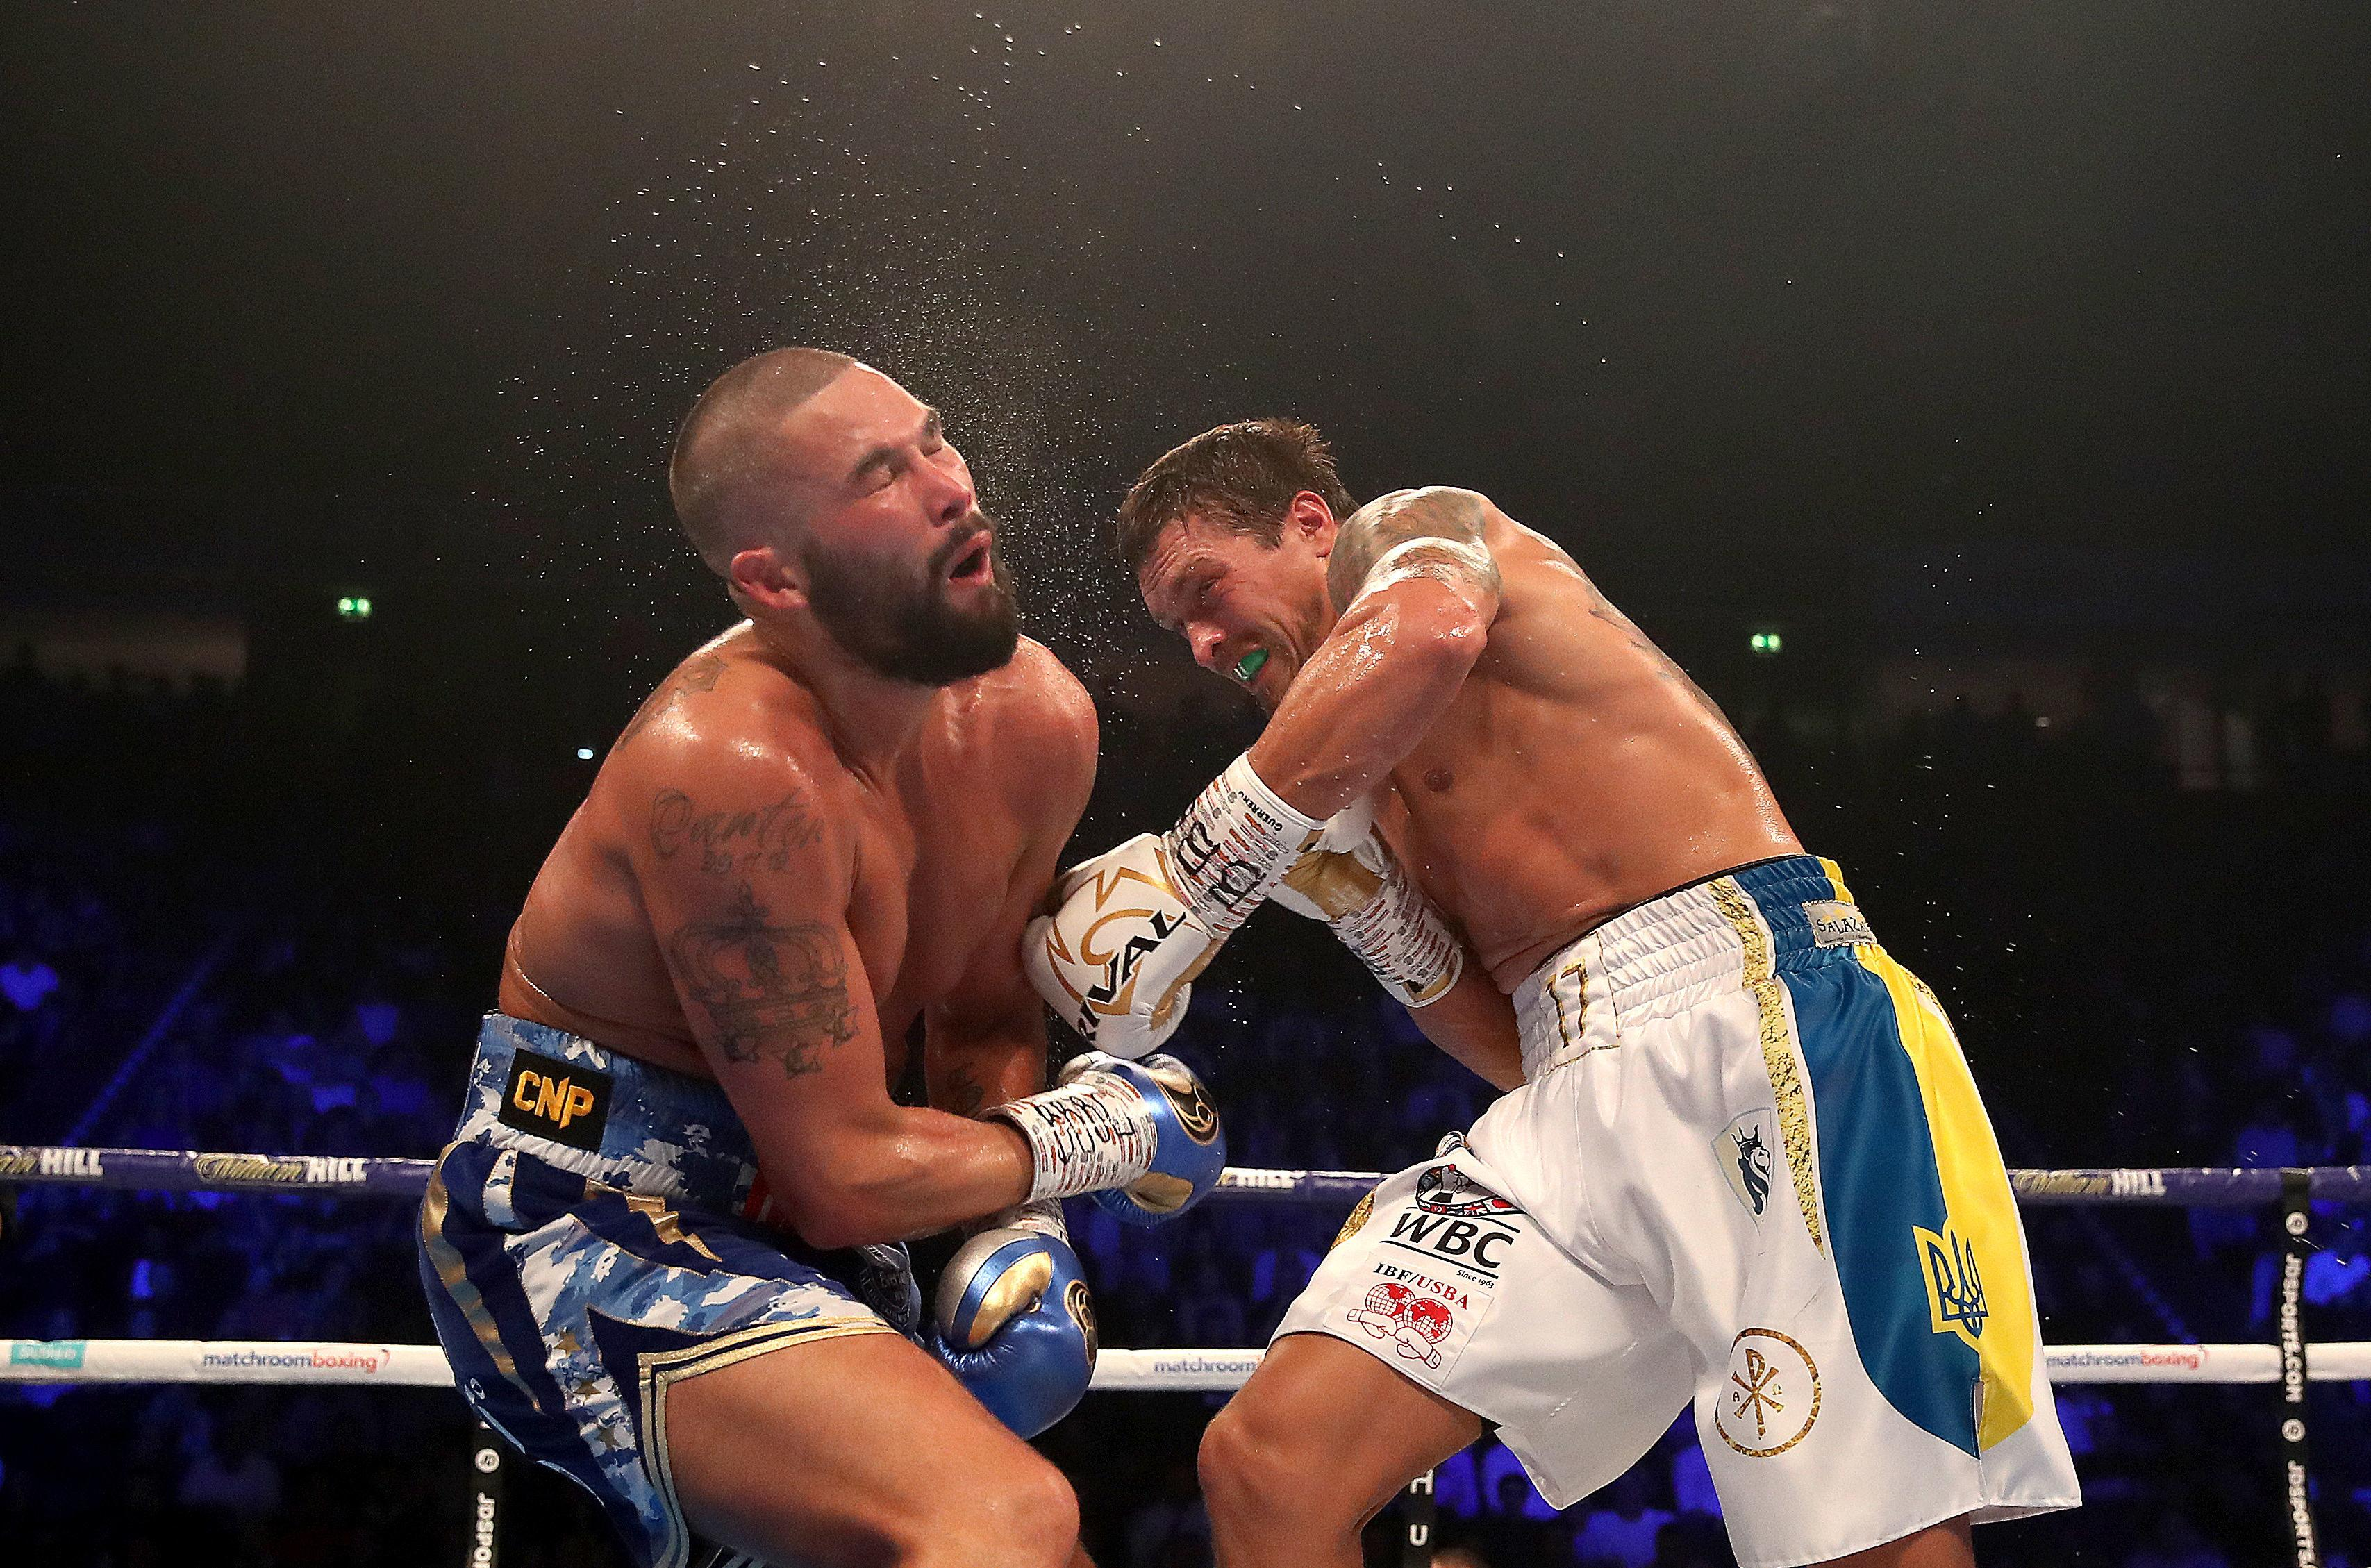 Tony Bellew did not know what round Oleksandr Usyk knocked him out